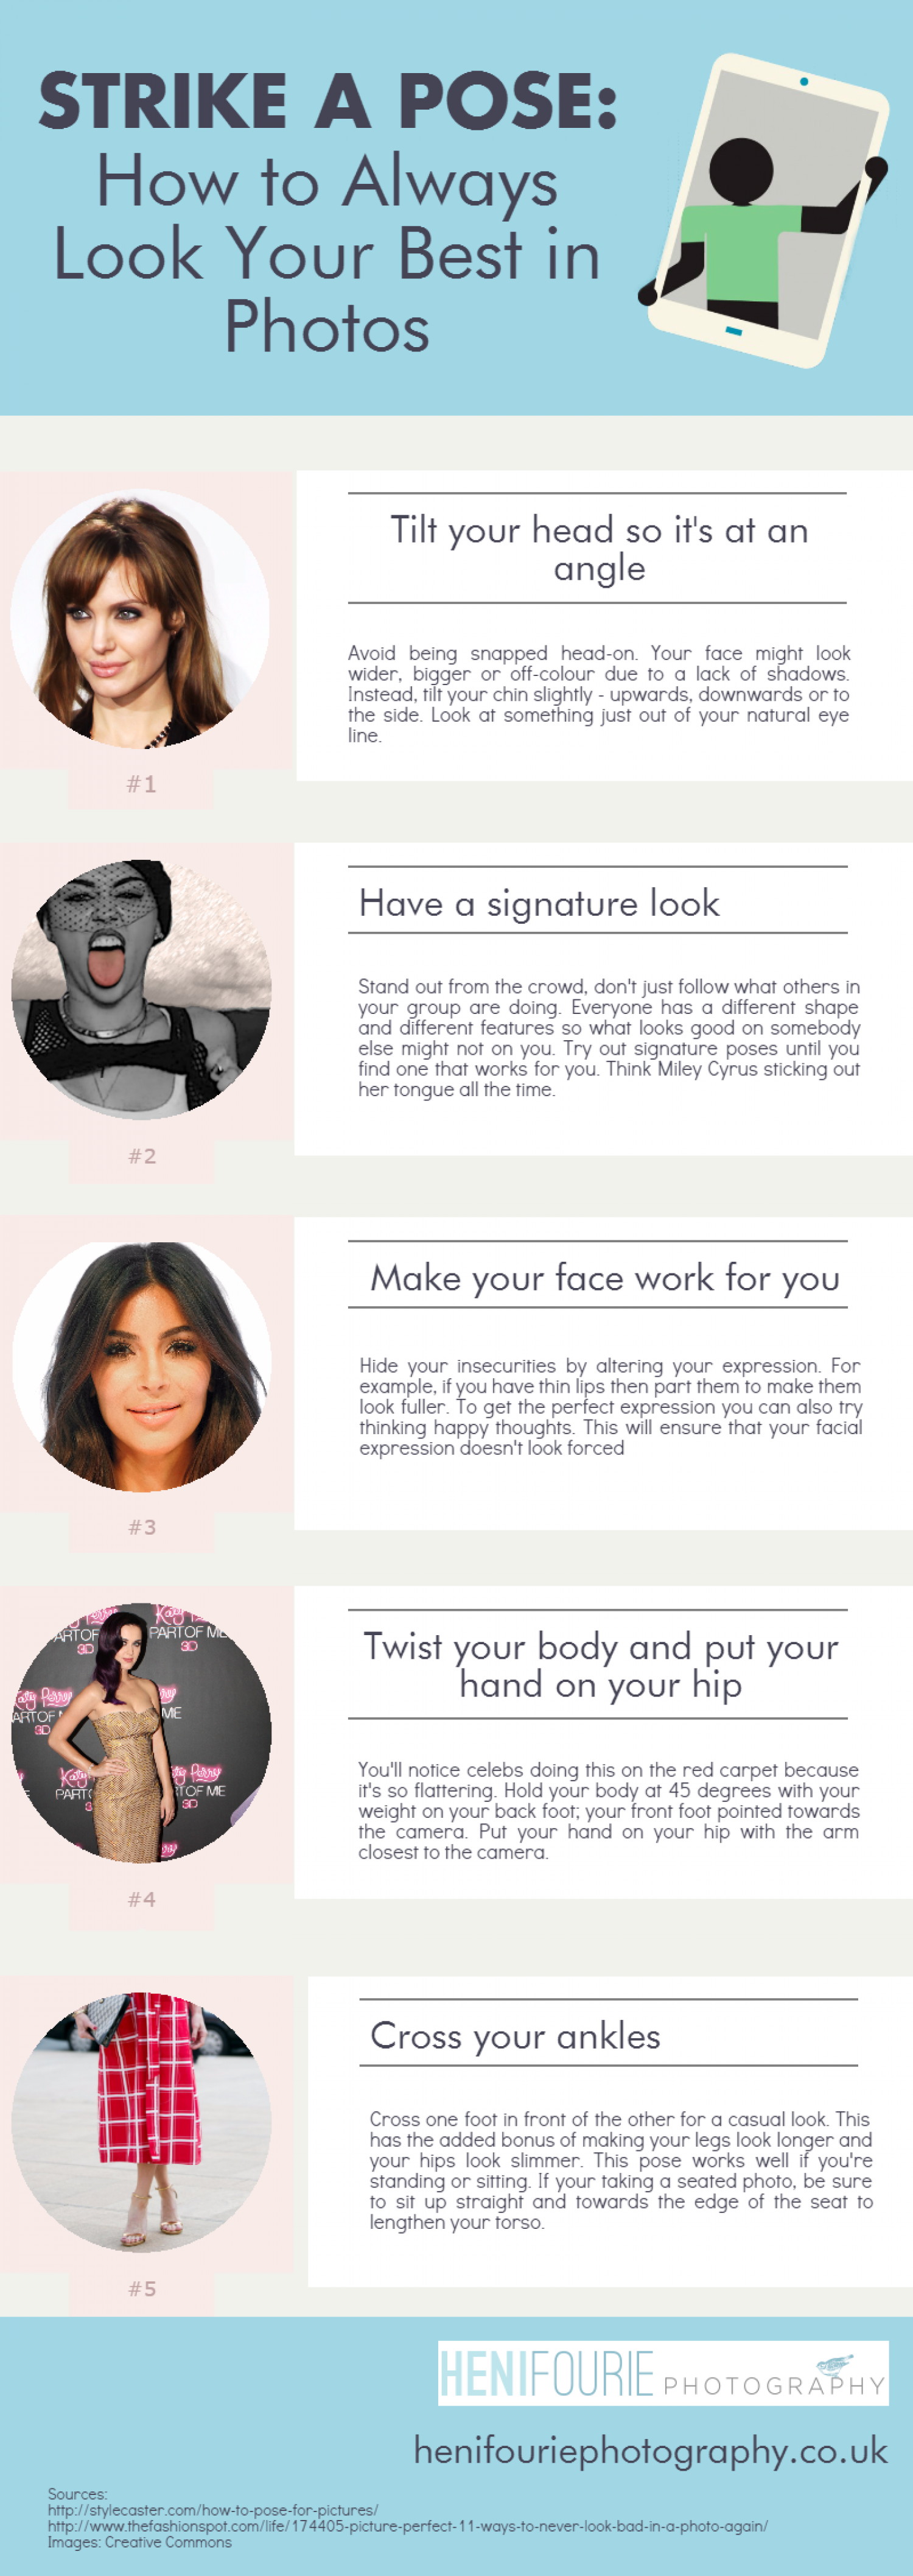 Strike a Pose: How to Always Look Your Best in Photos Infographic